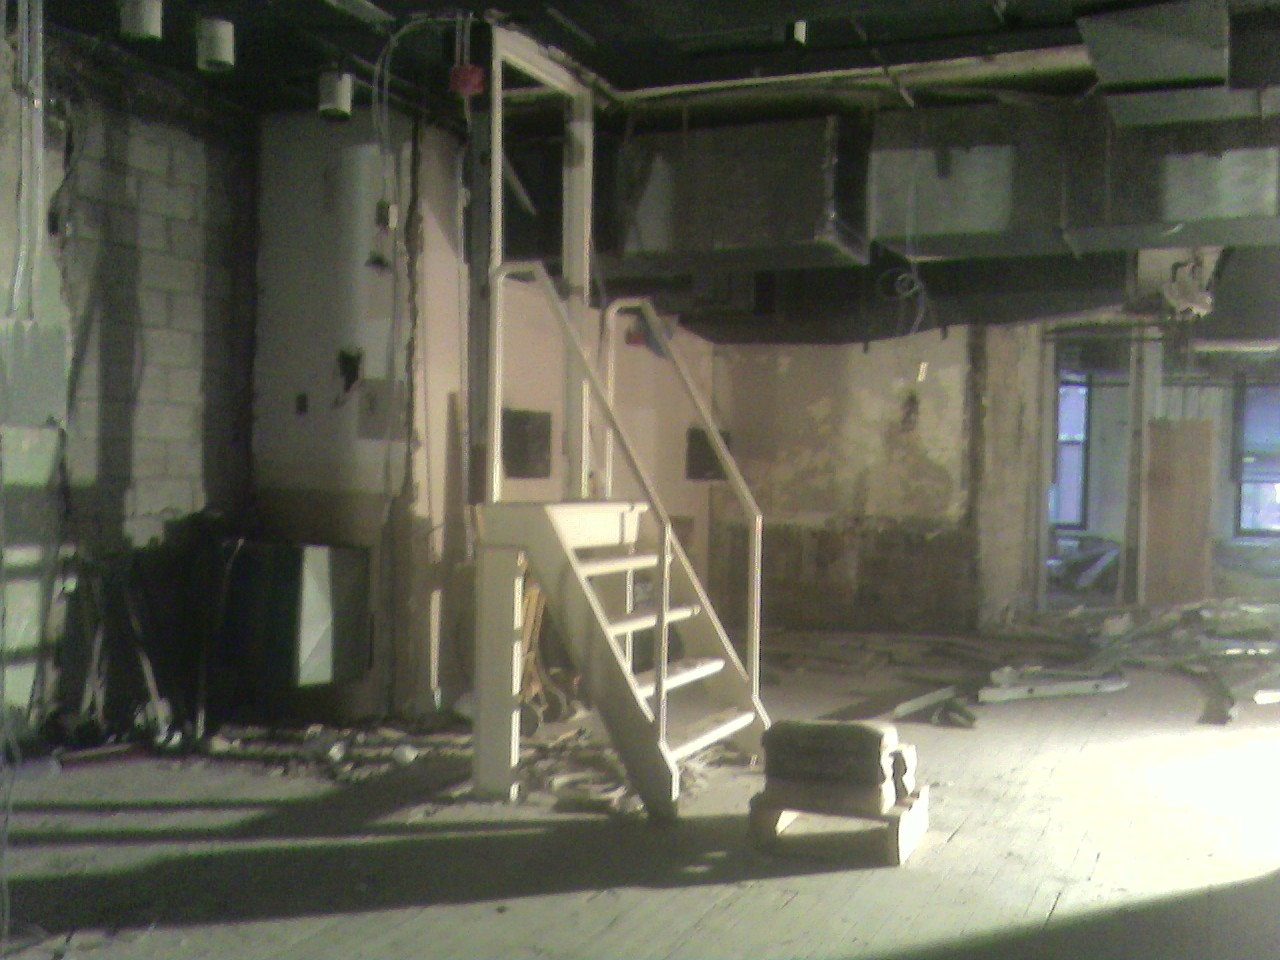 The stairway up to the projection booth during the renovation.